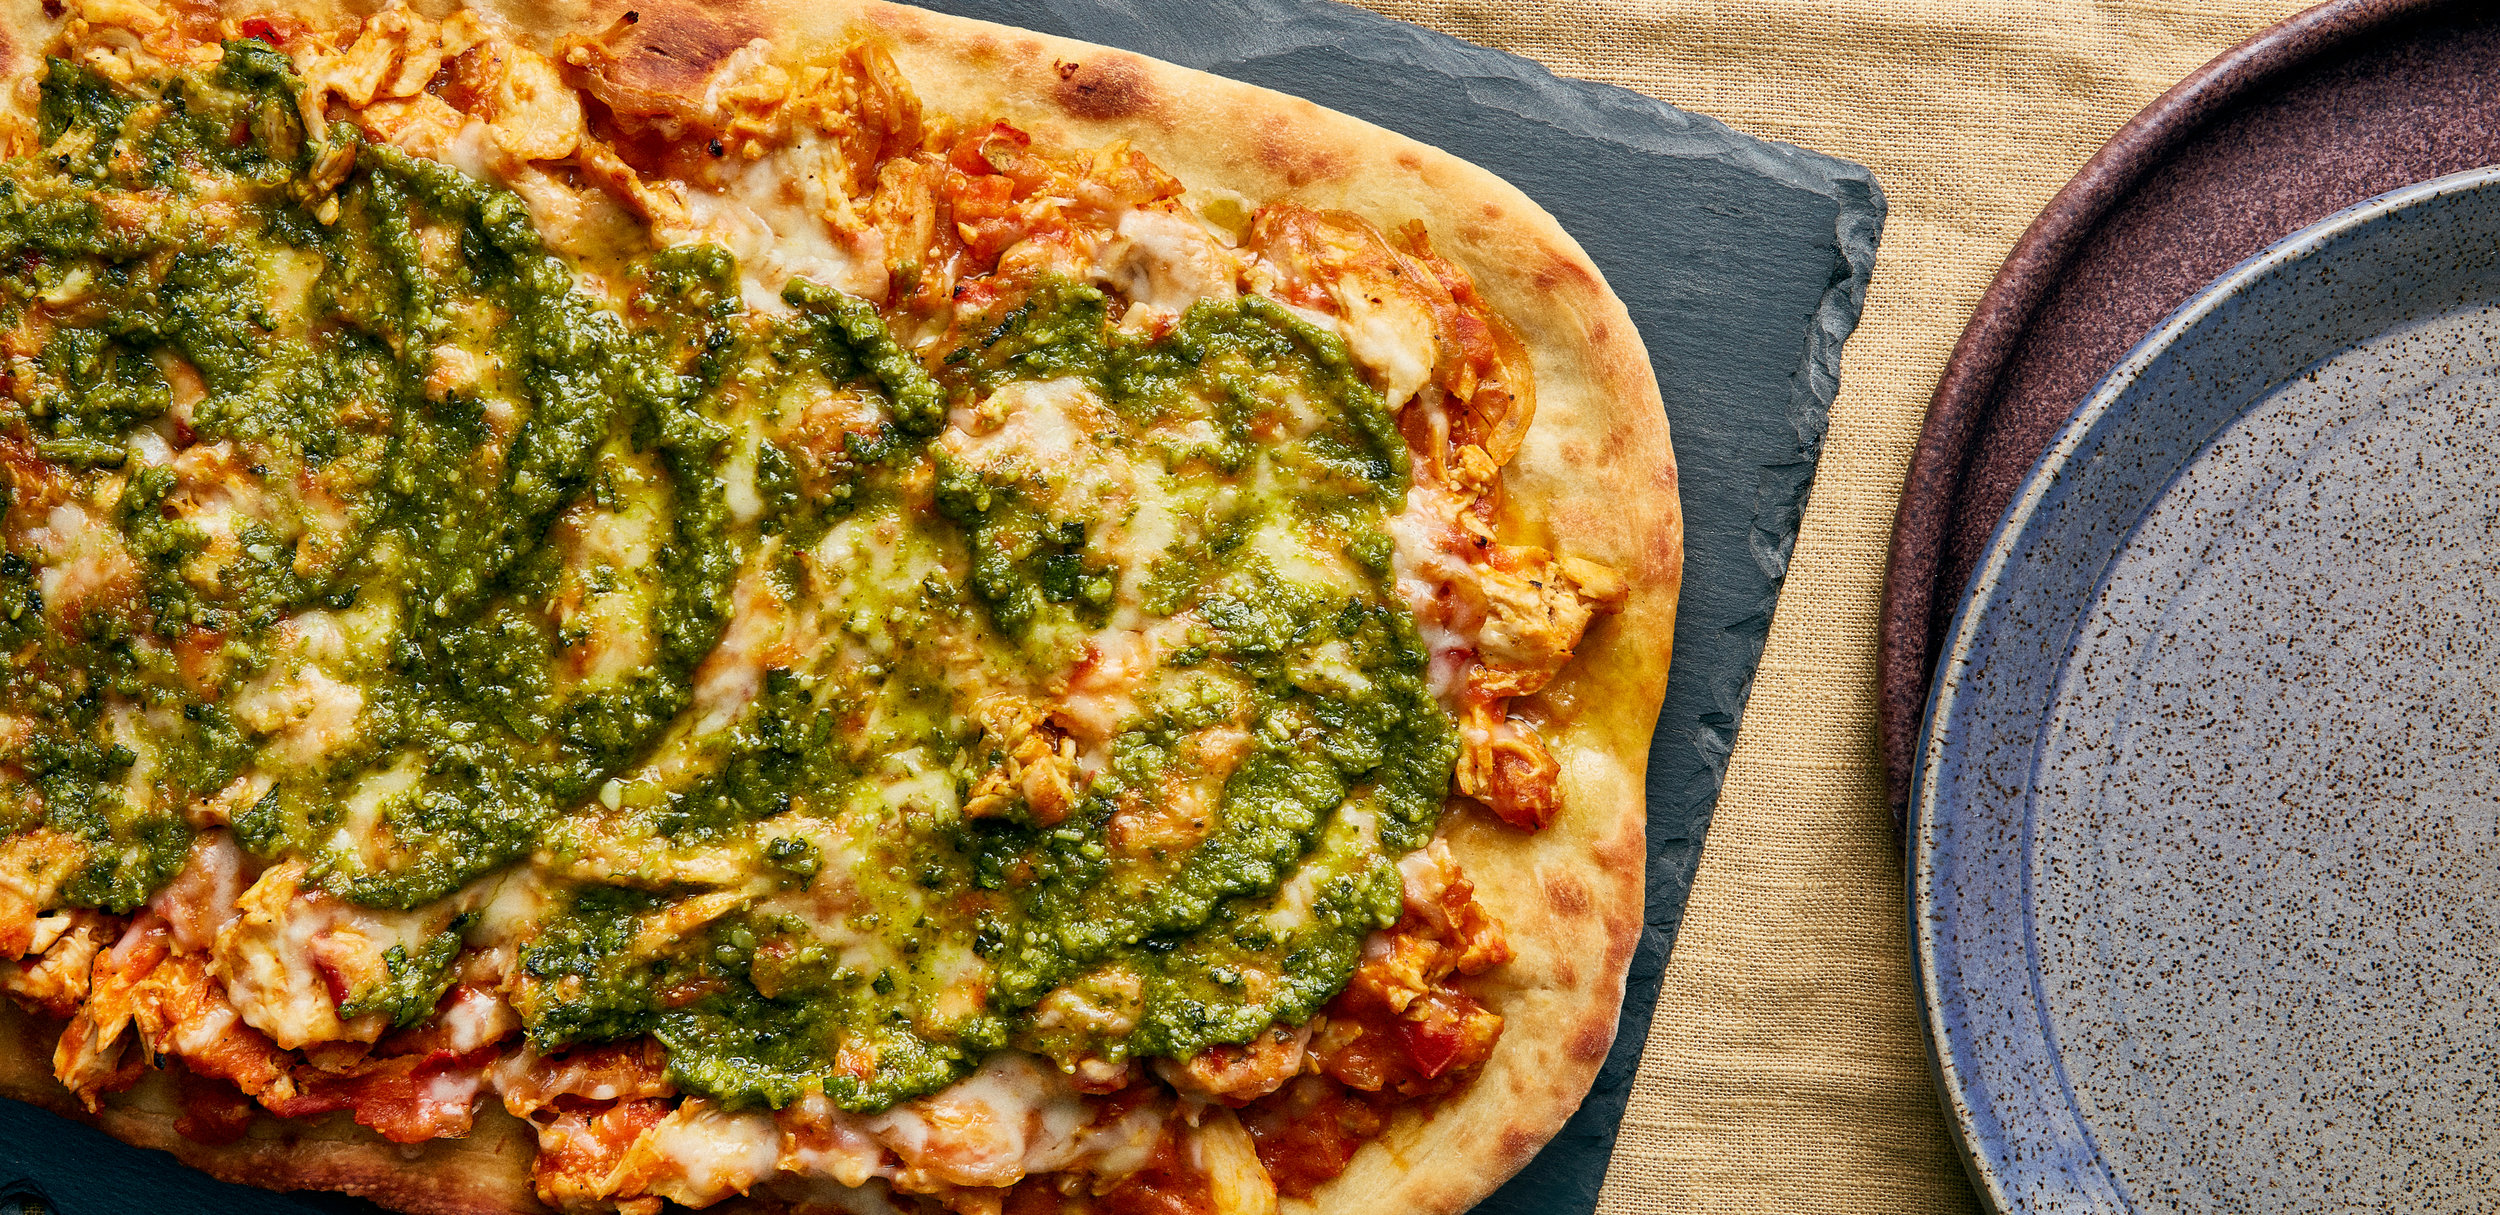 Pumpkin Pizza With Chicken and Sage Pesto — 0022 — HERO.jpg